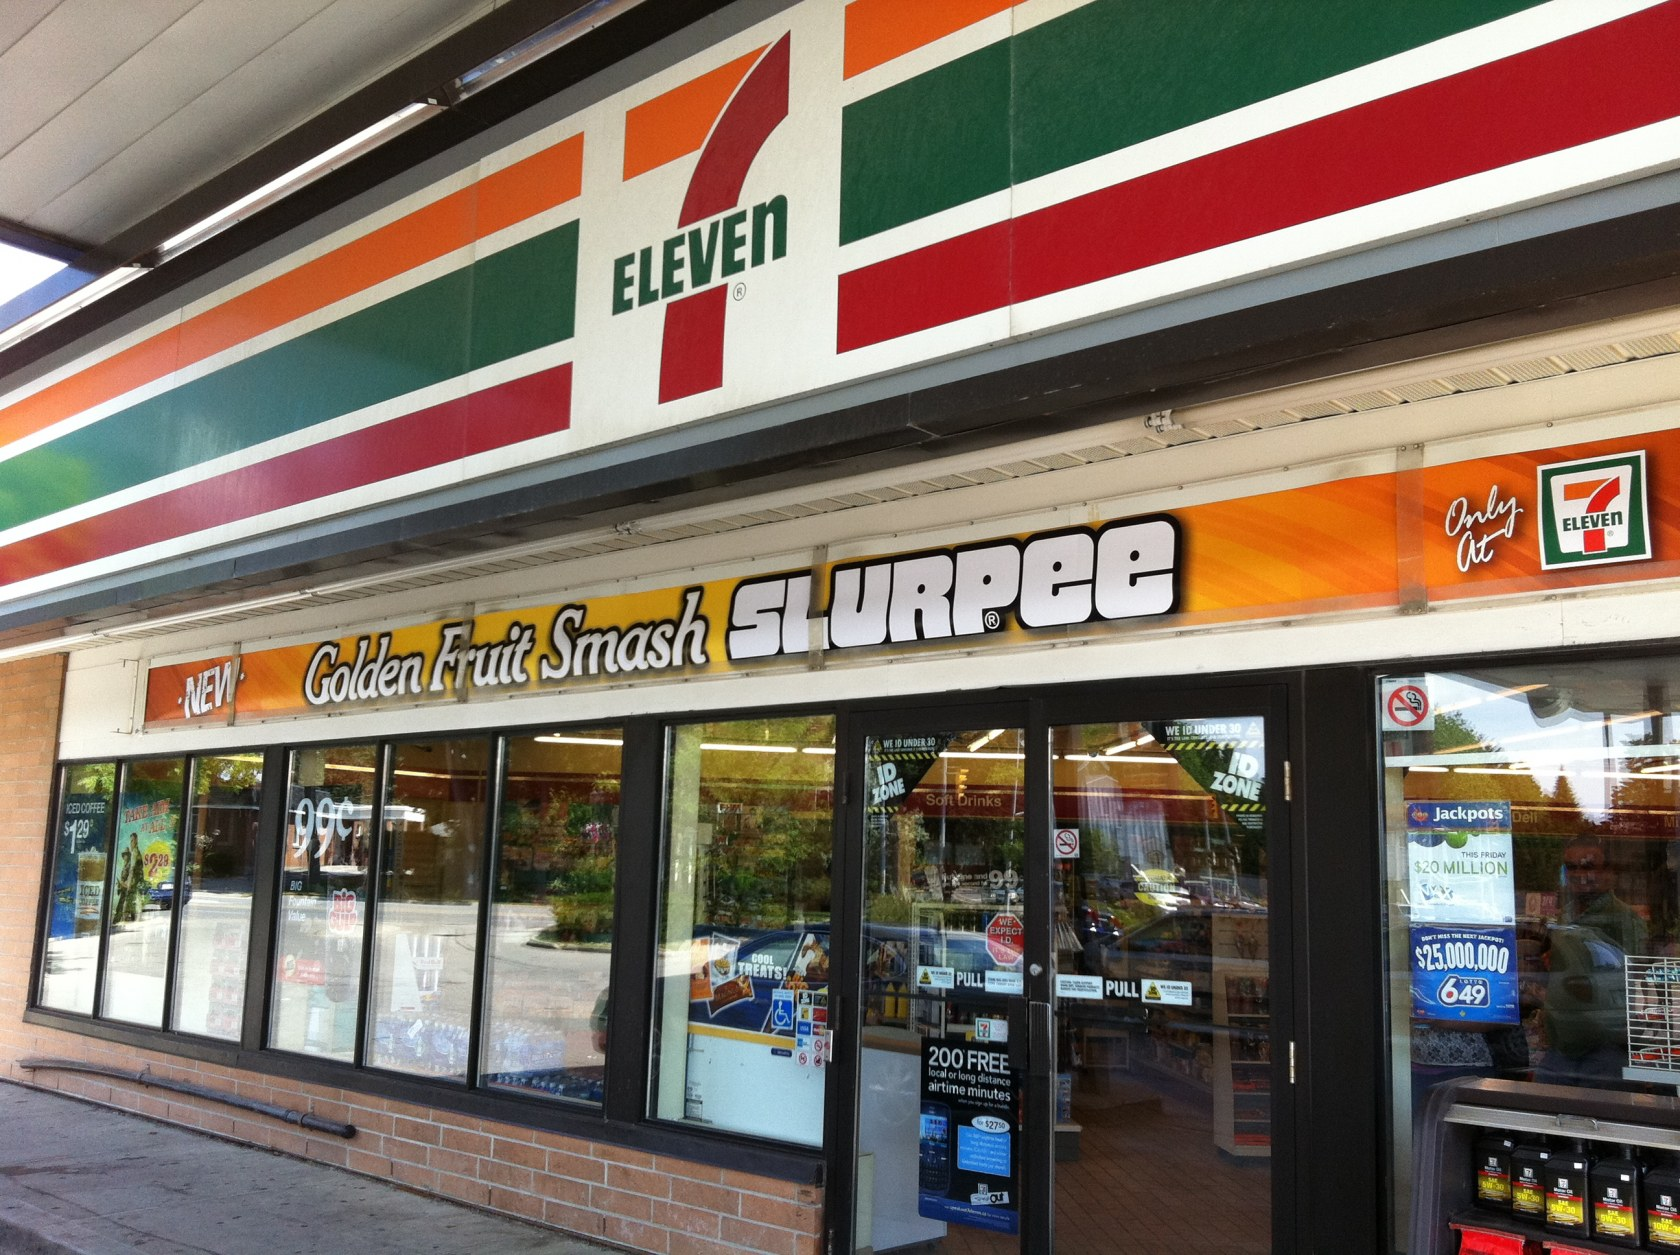 7-Eleven Debuts Scan & Pay Using Shoppers' Smartphones In 14 Stores